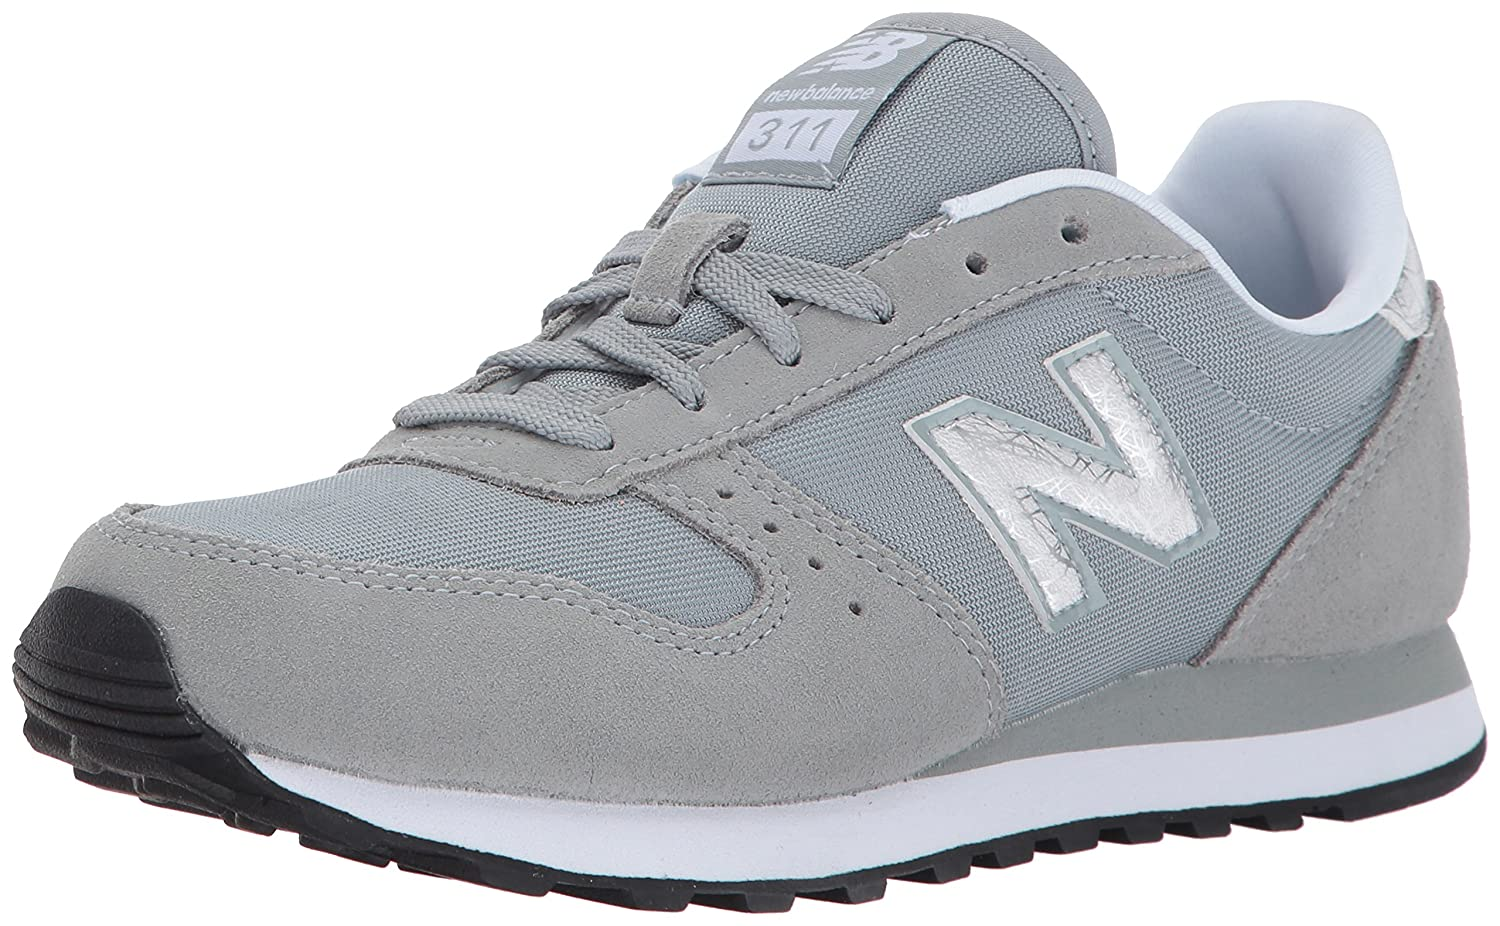 New Balance Women's 311v1 Sneaker B01N43LROS 10 B(M) US|Apollo Grey/Silver